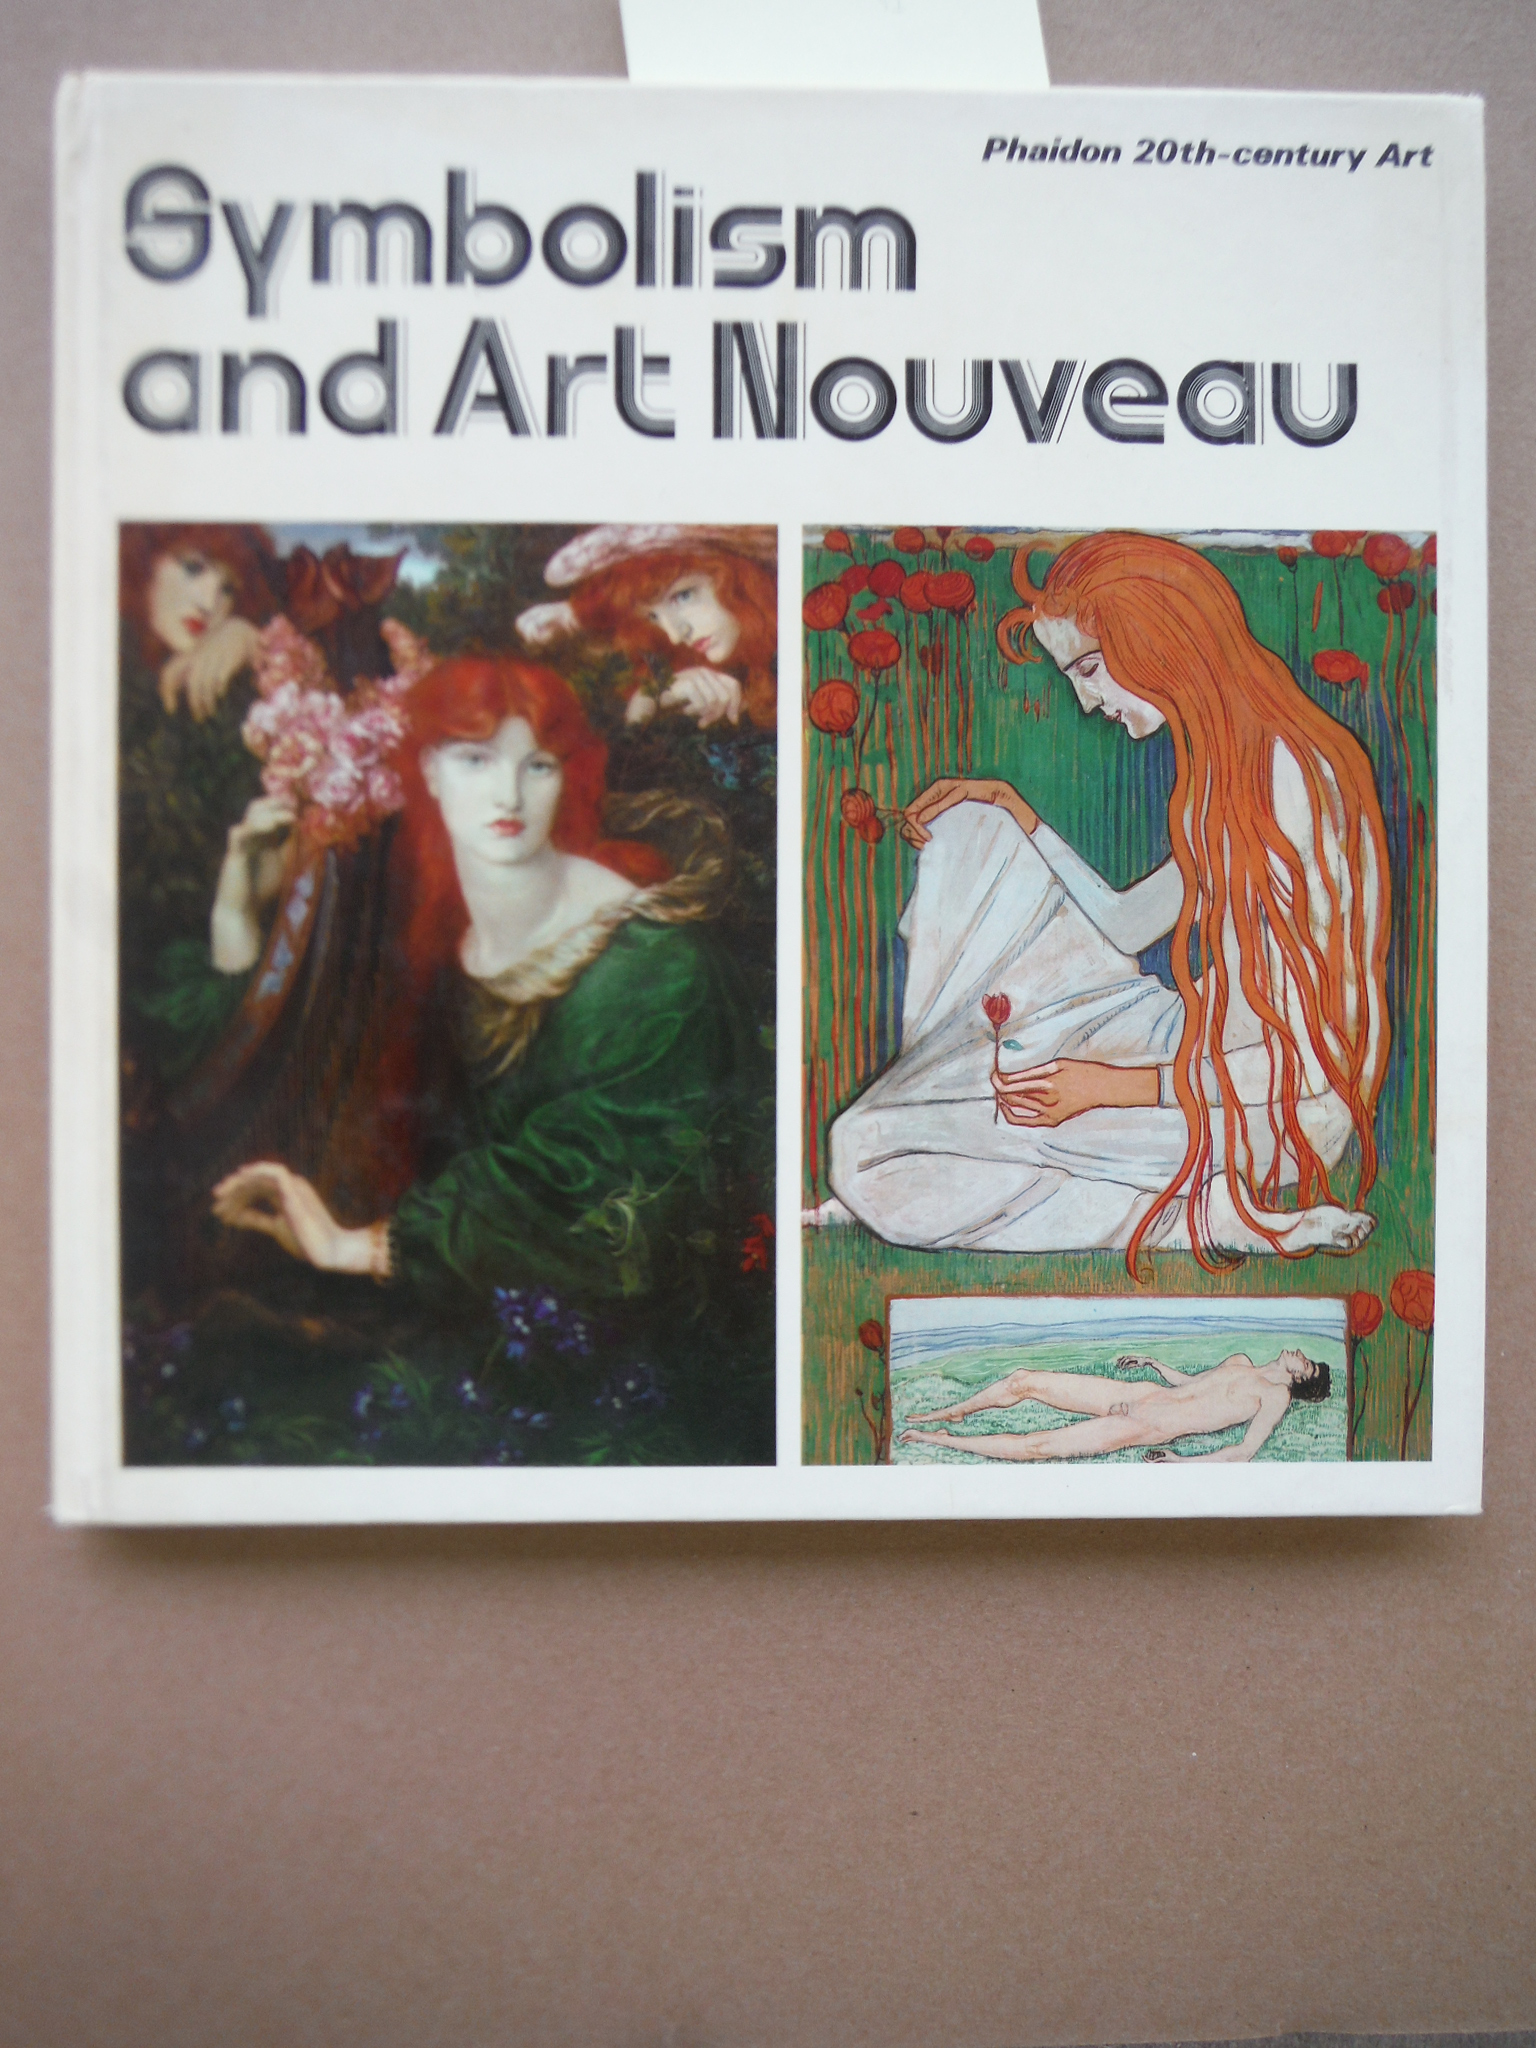 Symbolism and Art Nouveau (Phaidon 20th-century art)